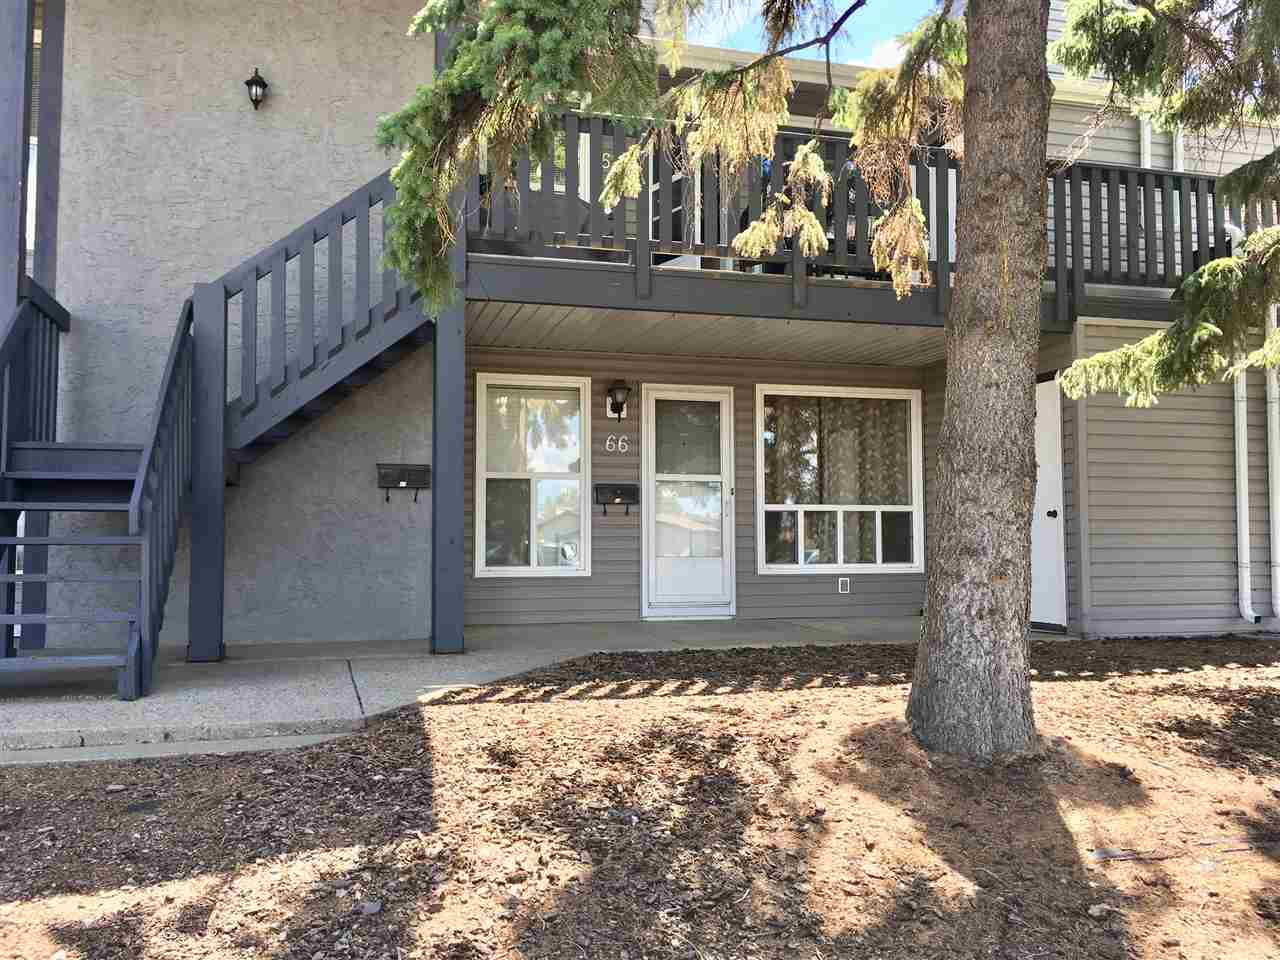 66 1503 MILL WOODS Road E, 2 bed, 1 bath, at $162,500